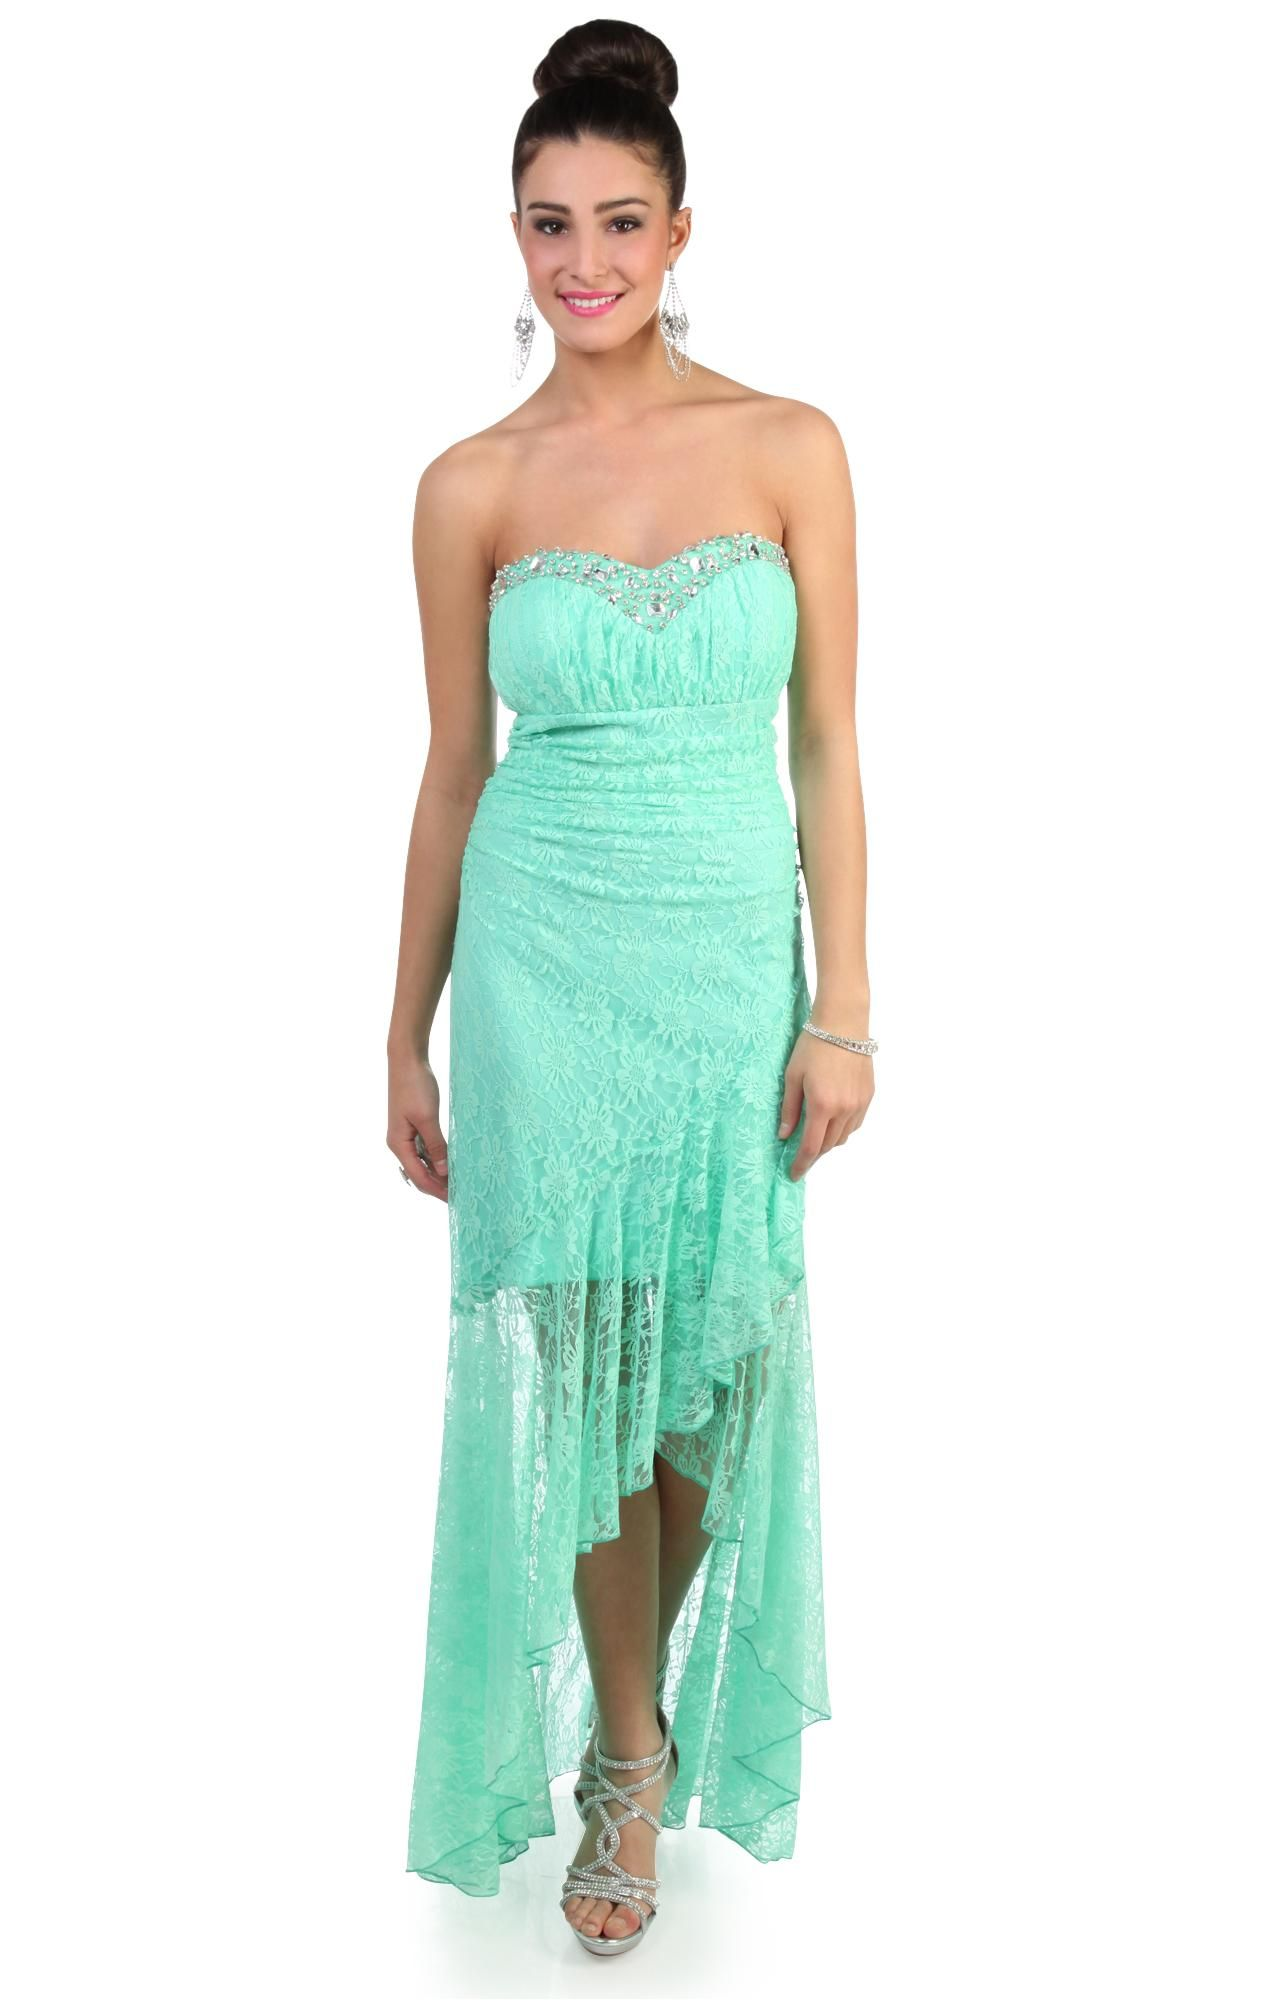 mint all over lace peasant style ruffled high low prom dress $89.99 ...